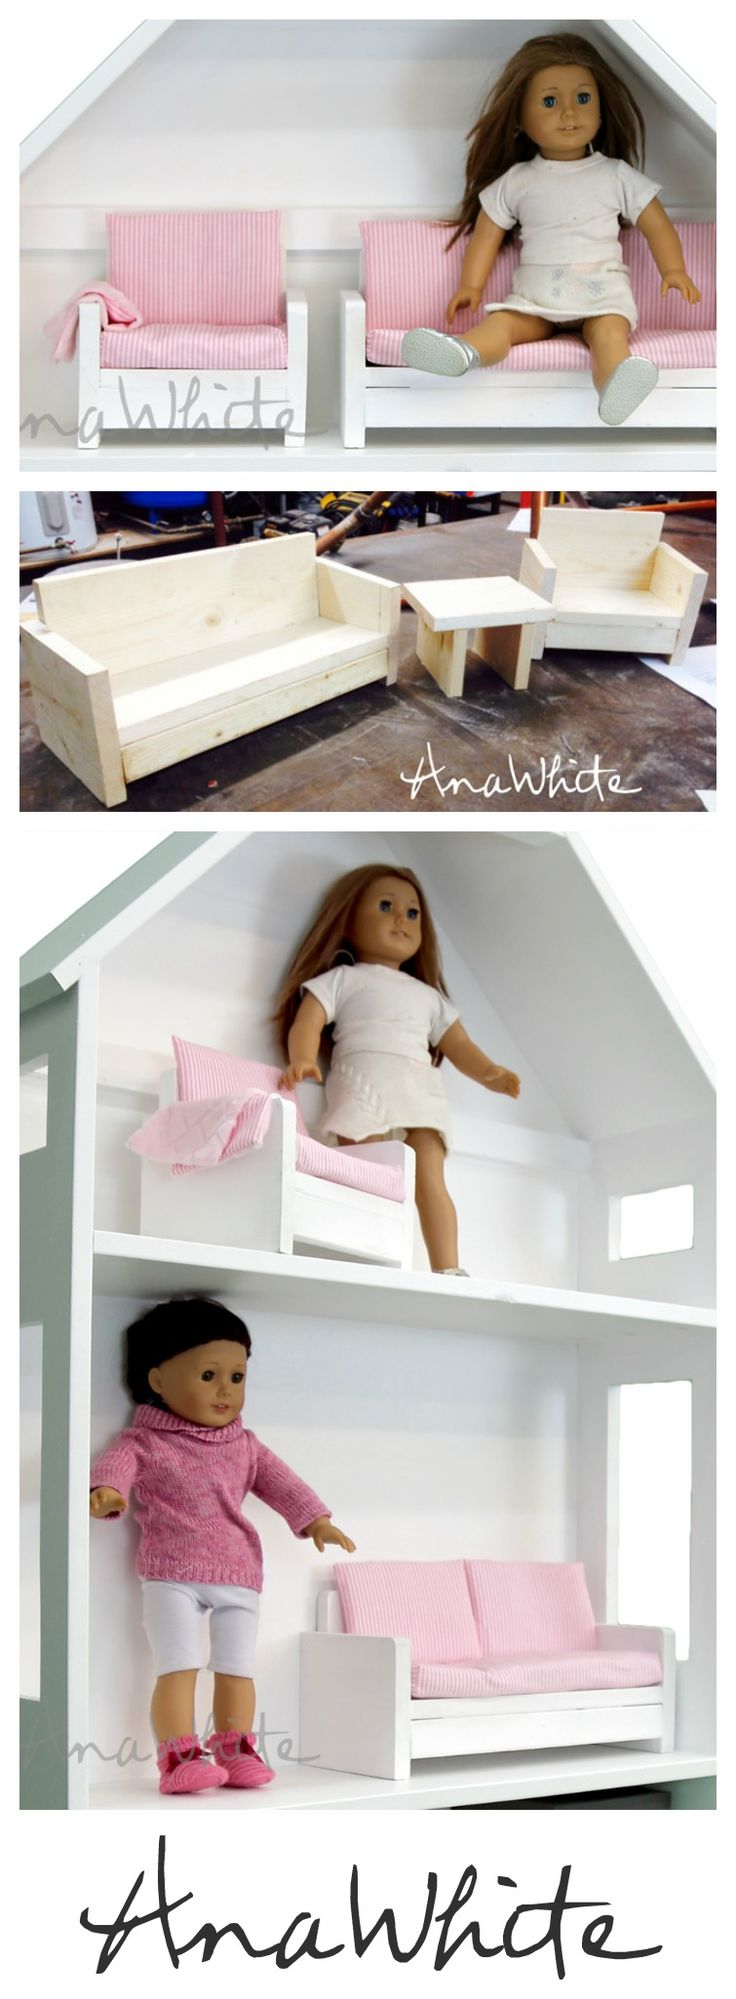 Table success do it yourself home projects from ana white diy 85 - Diy Doll Furniture You Can Make From Scrap Wood Easy To Make American Girl Or Doll Sofa And Chair Just And Scrap Wood Easy Plans By Ana White